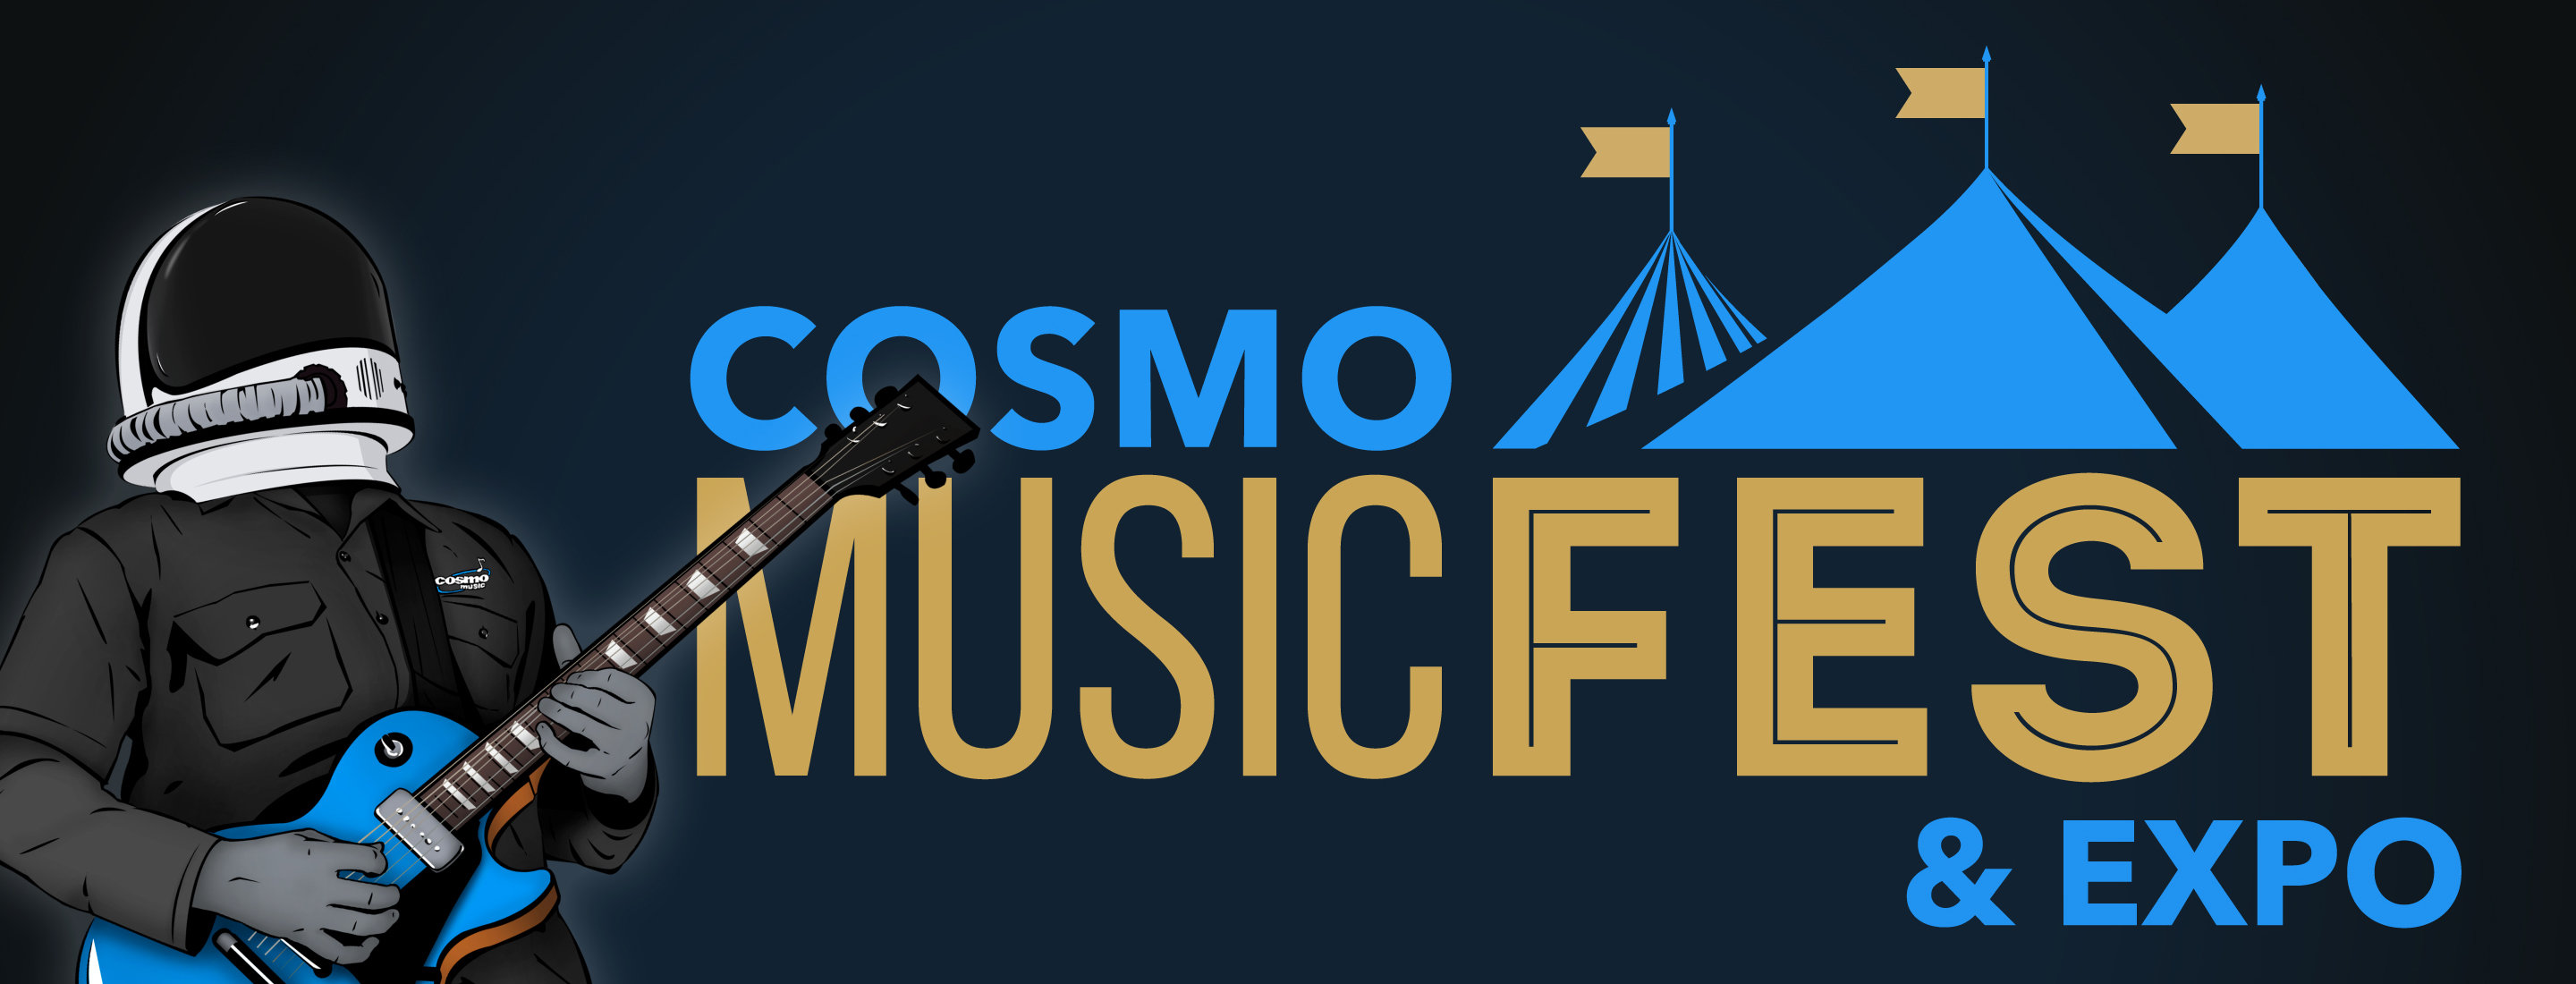 CosmoFEST - Cosmo MusicFEST & EXPO at Cosmo Music